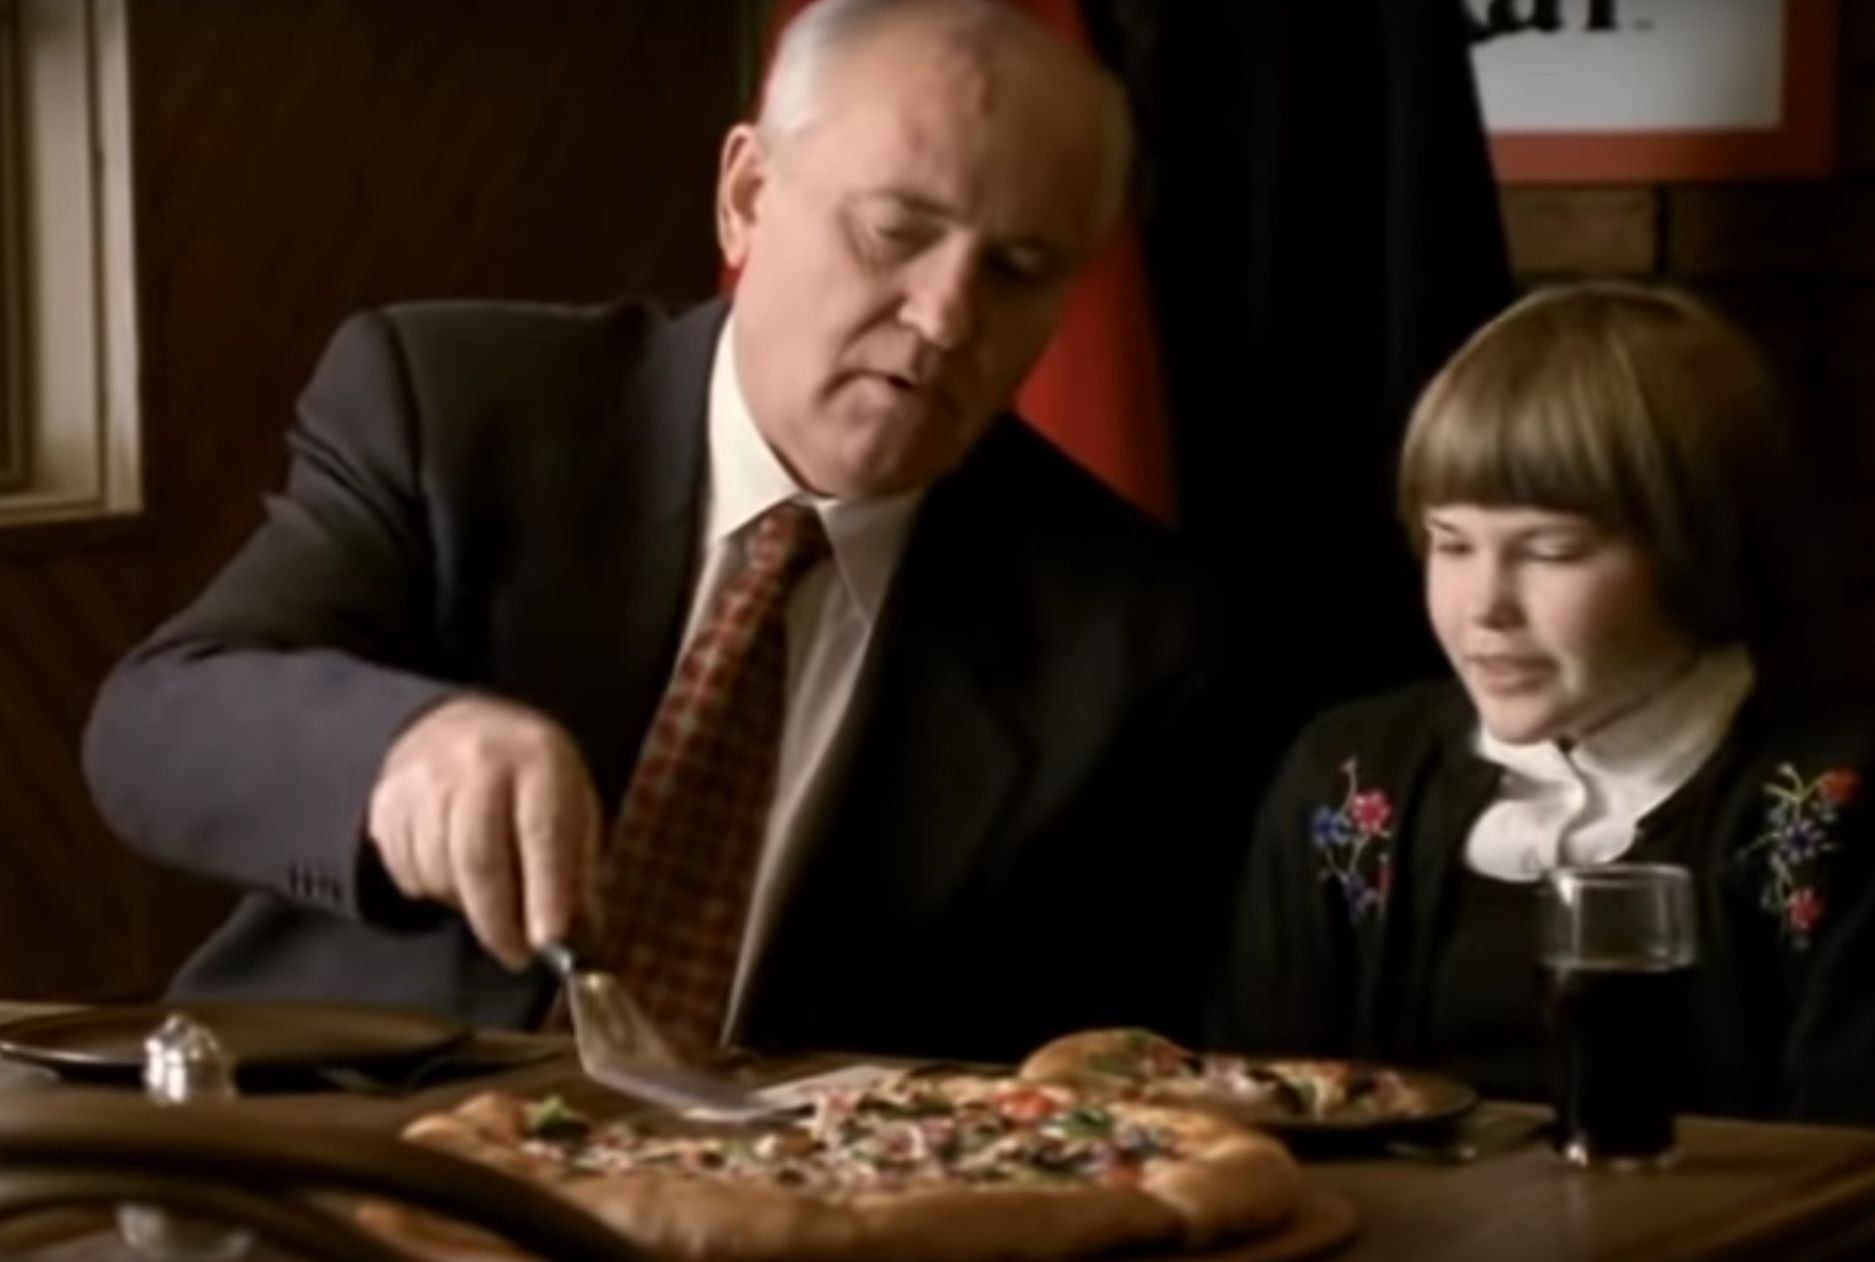 Watch Mikhail Gorbachev Hawk Pizza Hut in This Retro 1997 Commercial